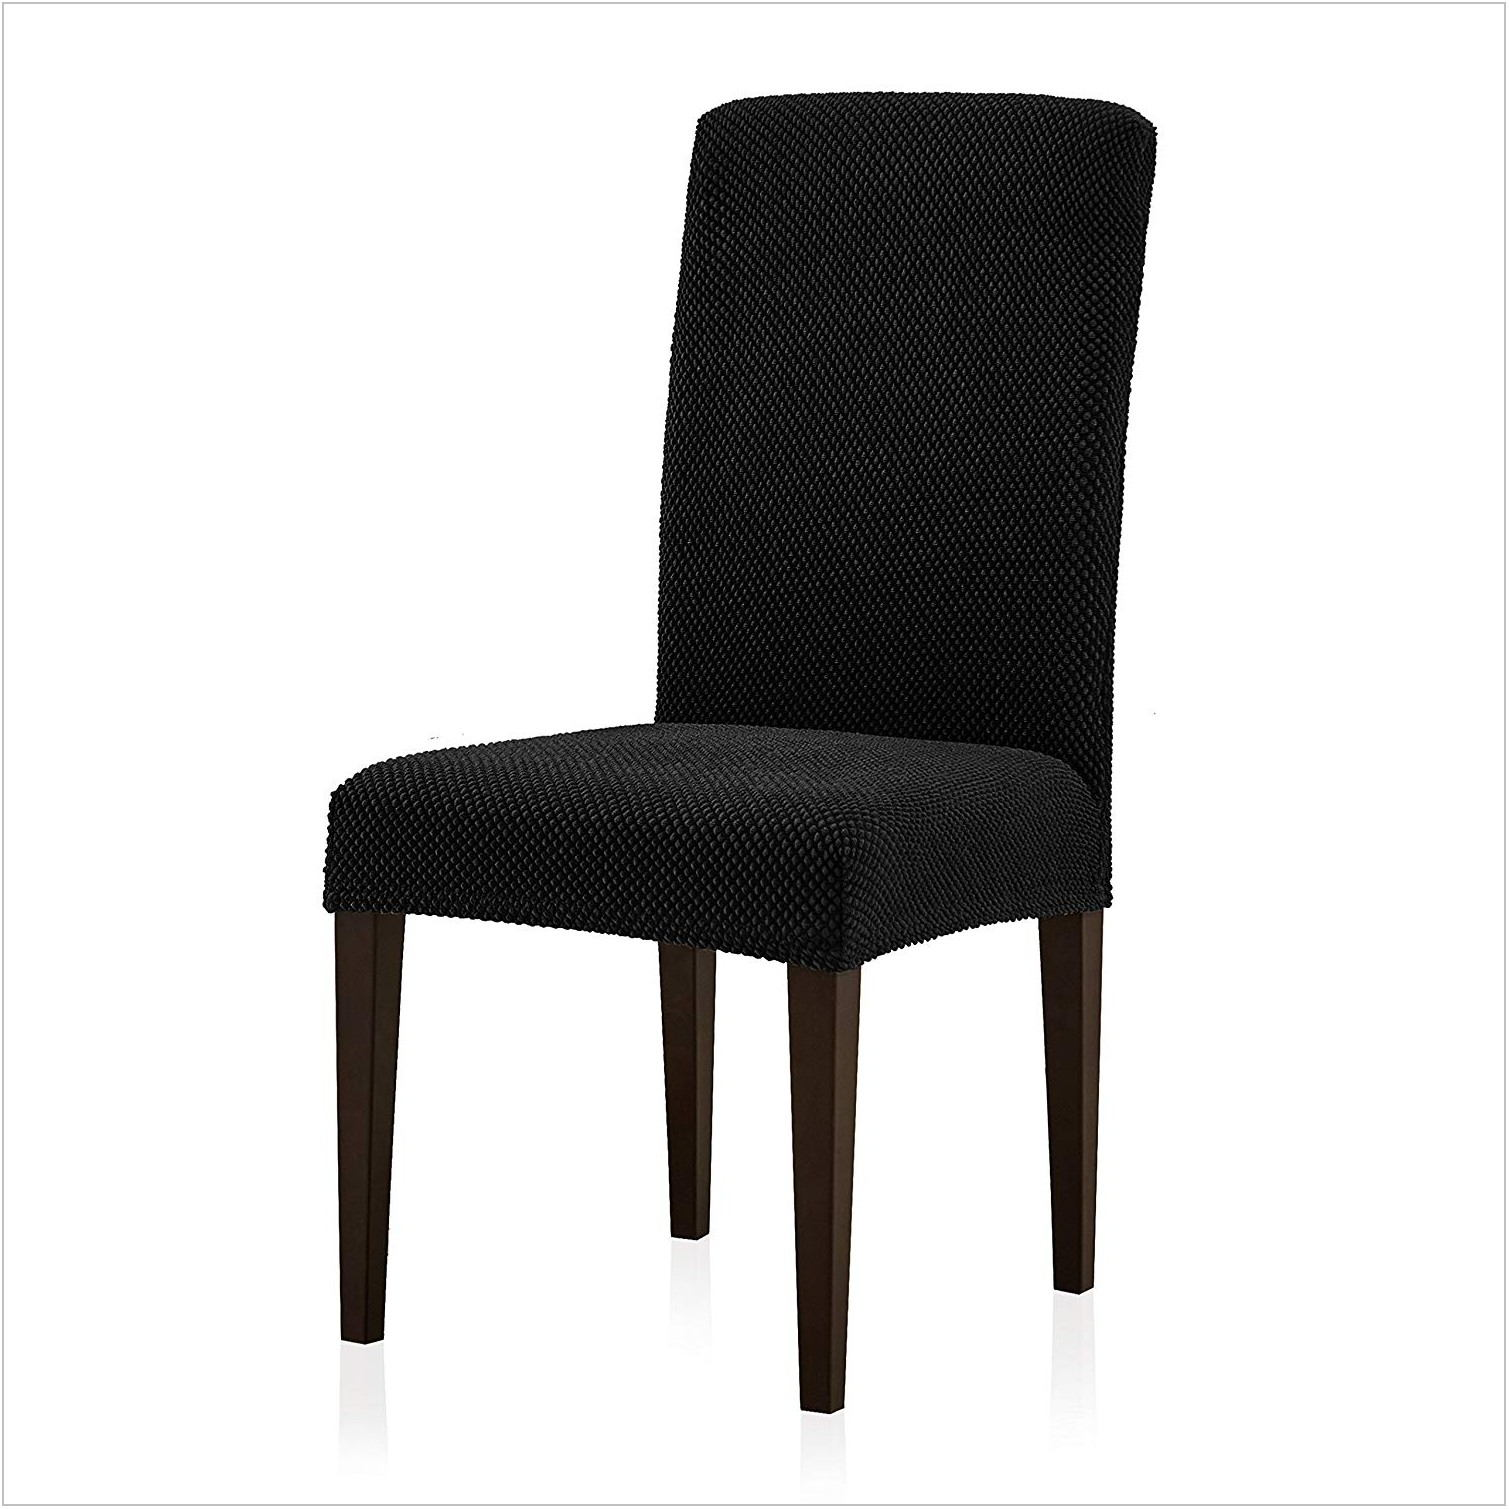 Subrtex Stretch Dining Room Chair Slipcovers